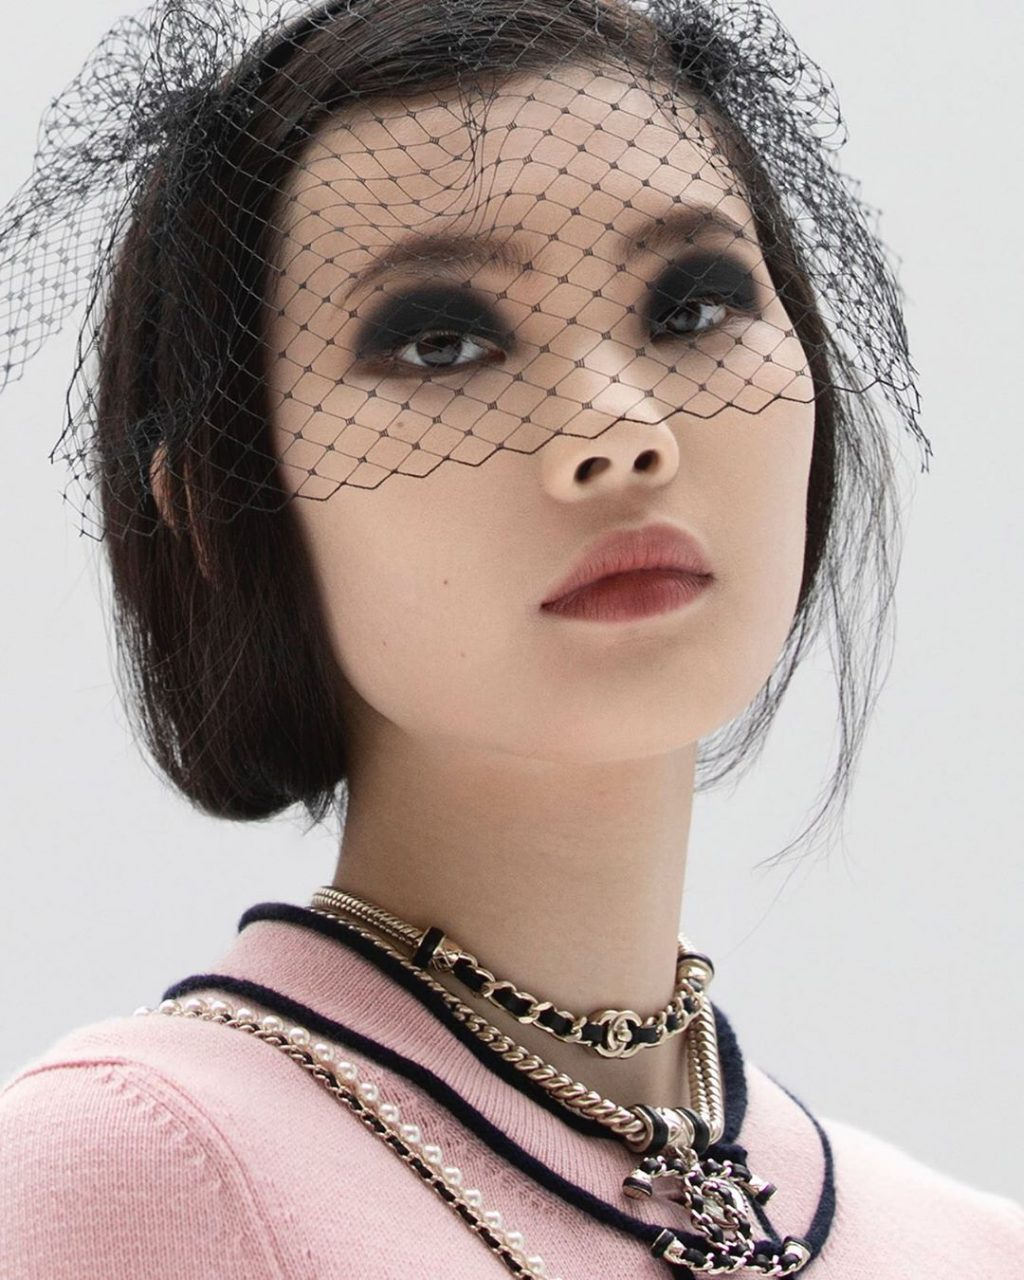 Chanel Proves That Goth-Inspired Makeup Can Actually Be Chic